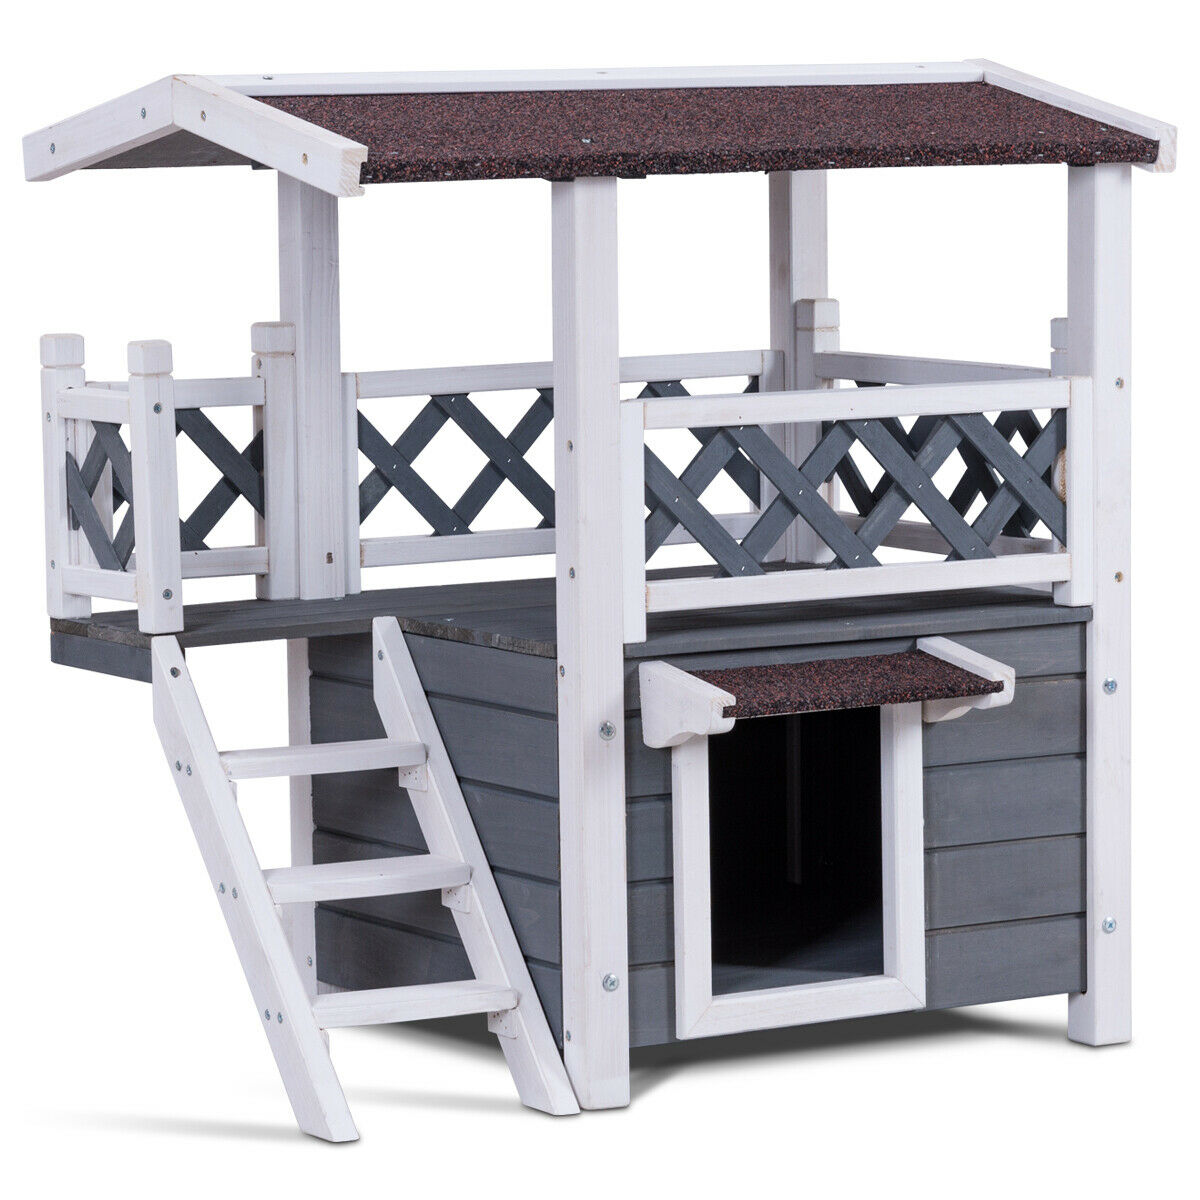 Gymax 2-Story Outdoor Weatherproof Wooden Cat House Condo Shelter with Ladder